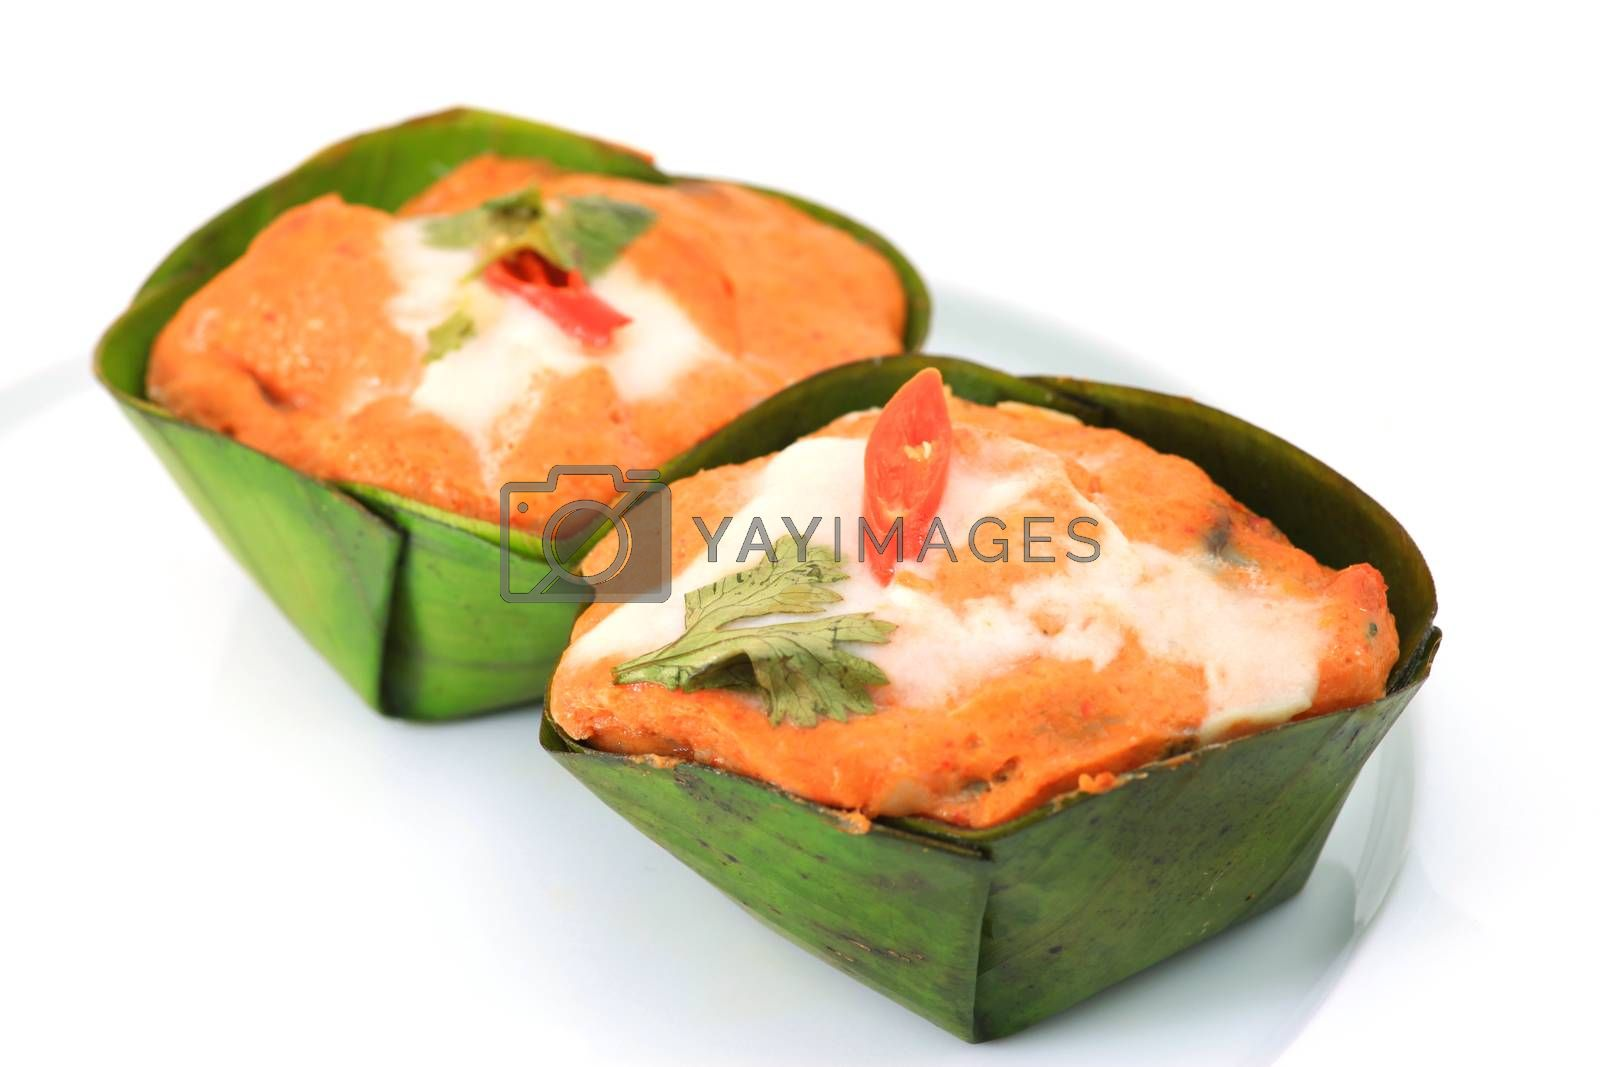 Royalty free image of steamed fish with curry paste by antpkr